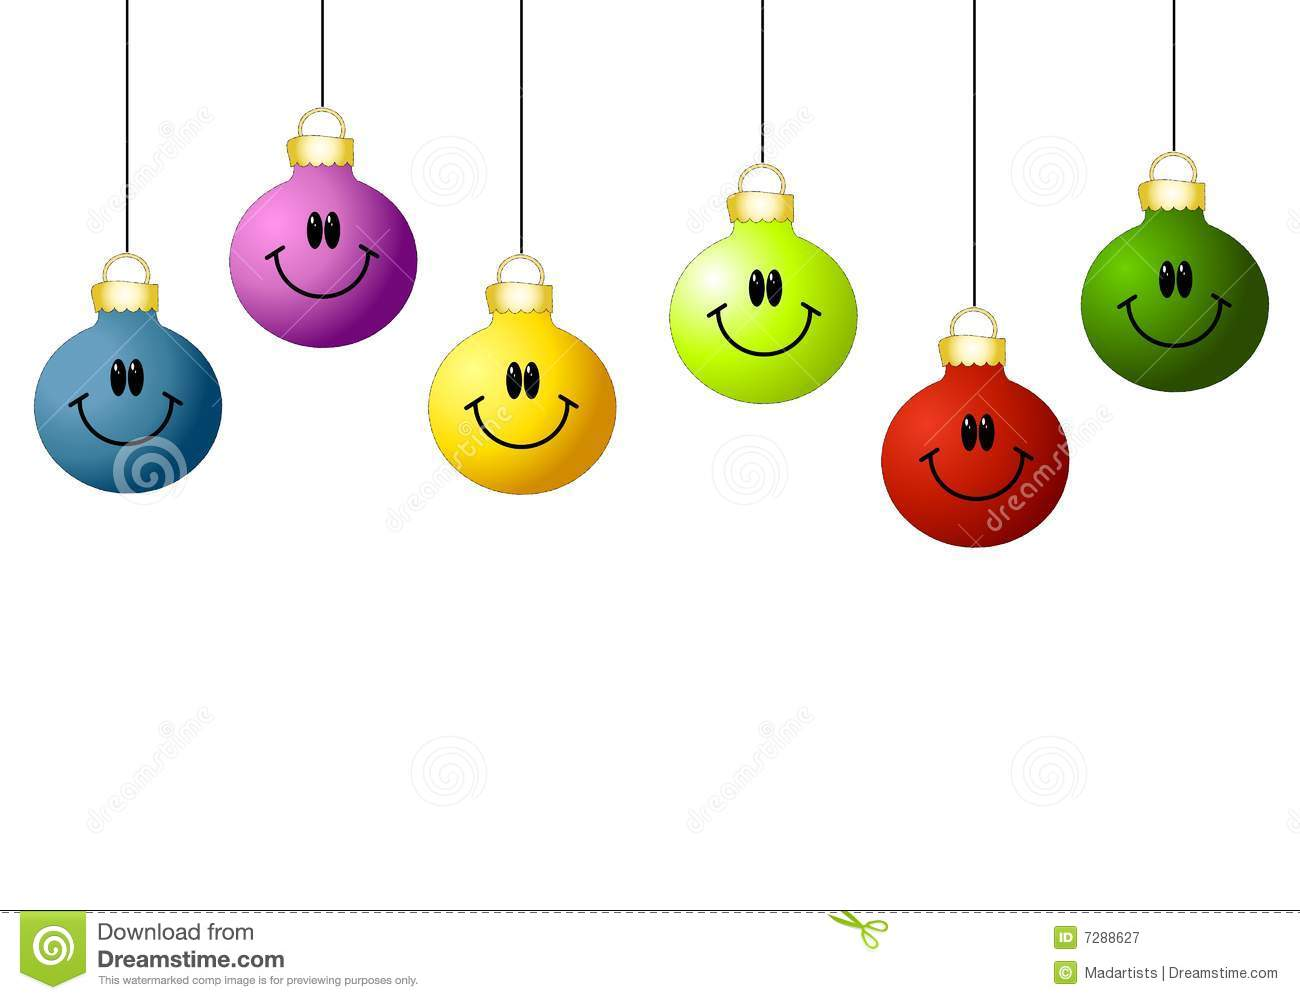 Smiley Face Ornaments stock illustration. Illustration of xmas - 7288627